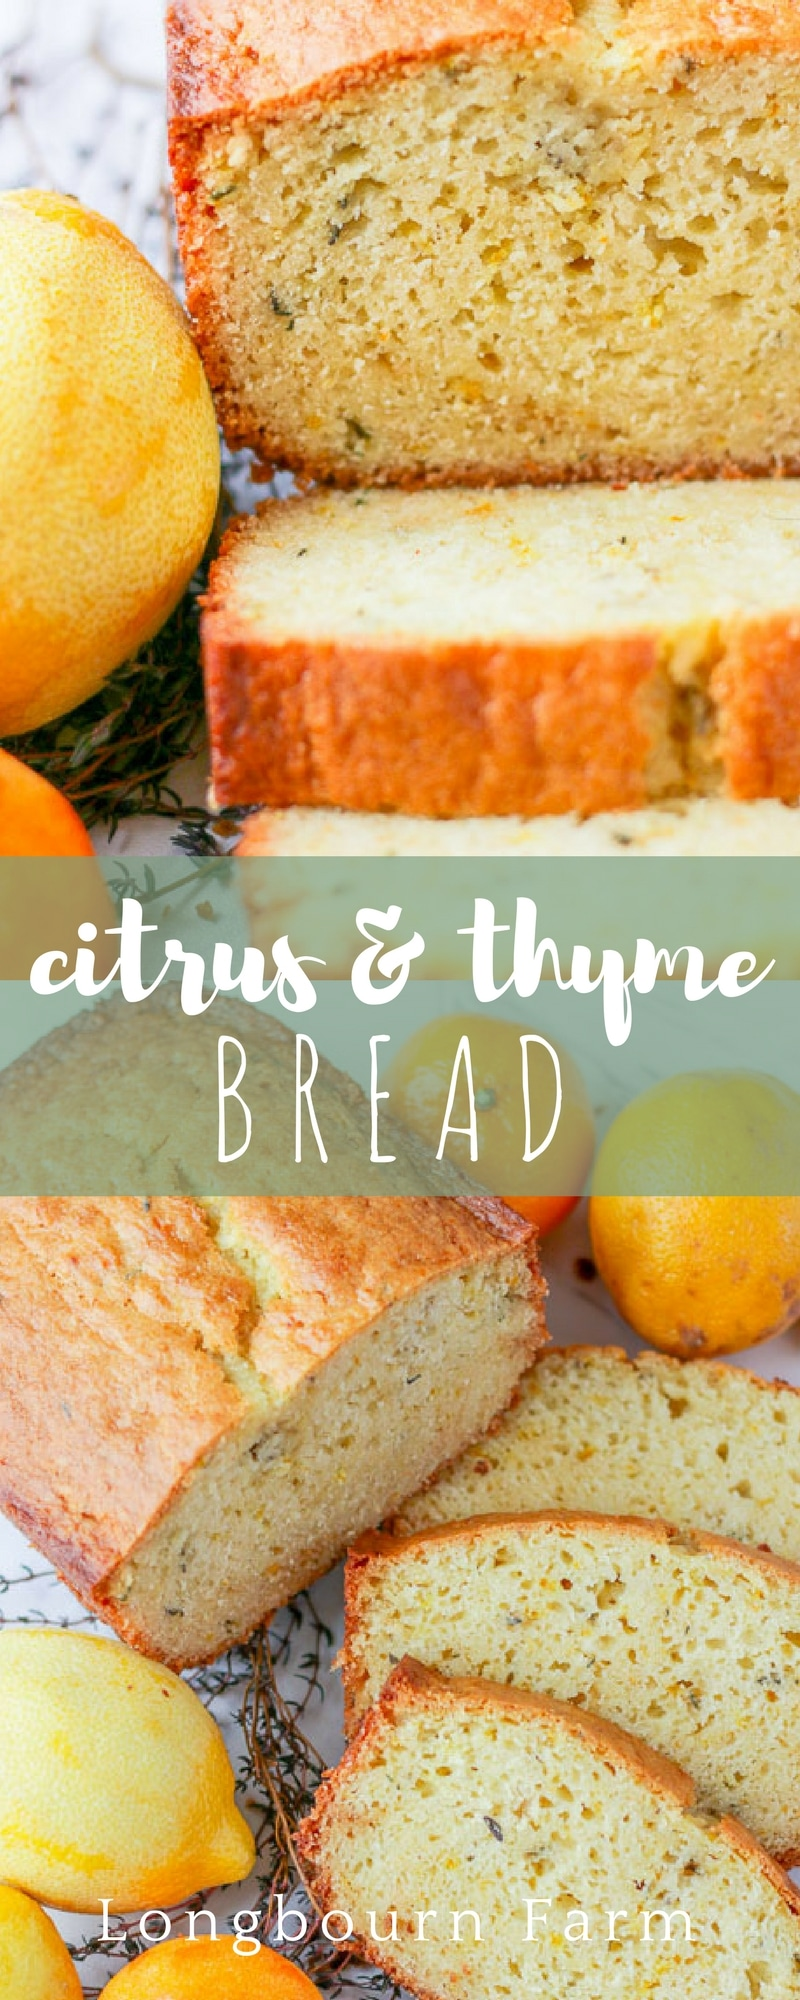 Citrus thyme bread is a fresh twist on a classic sweet bread. Quick to make, it's worth every minute of baking time! Packed with citrus flavor, customize it to your taste.